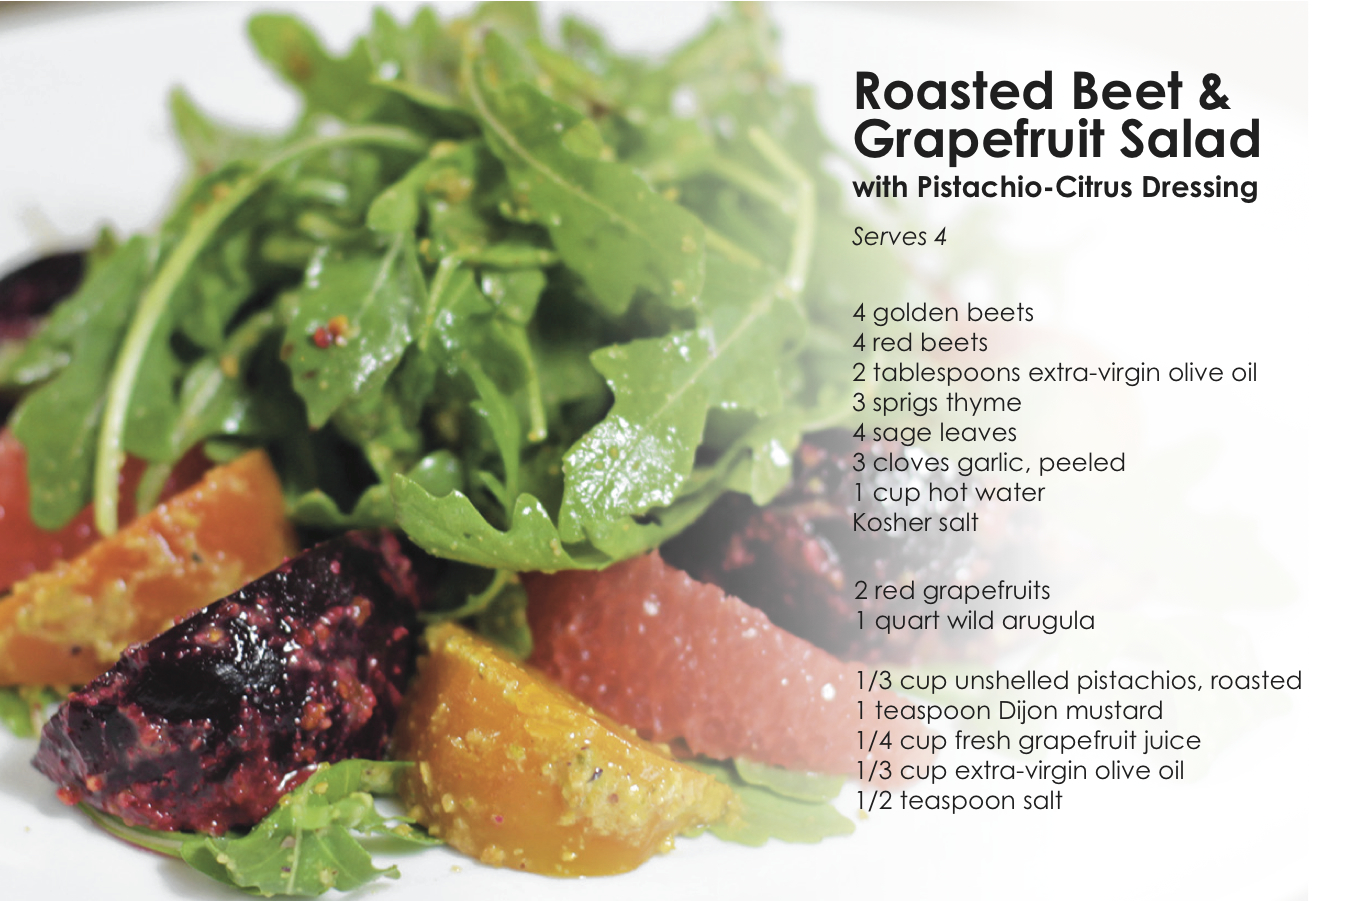 Roasted Beet and Grapefruit Salad 1